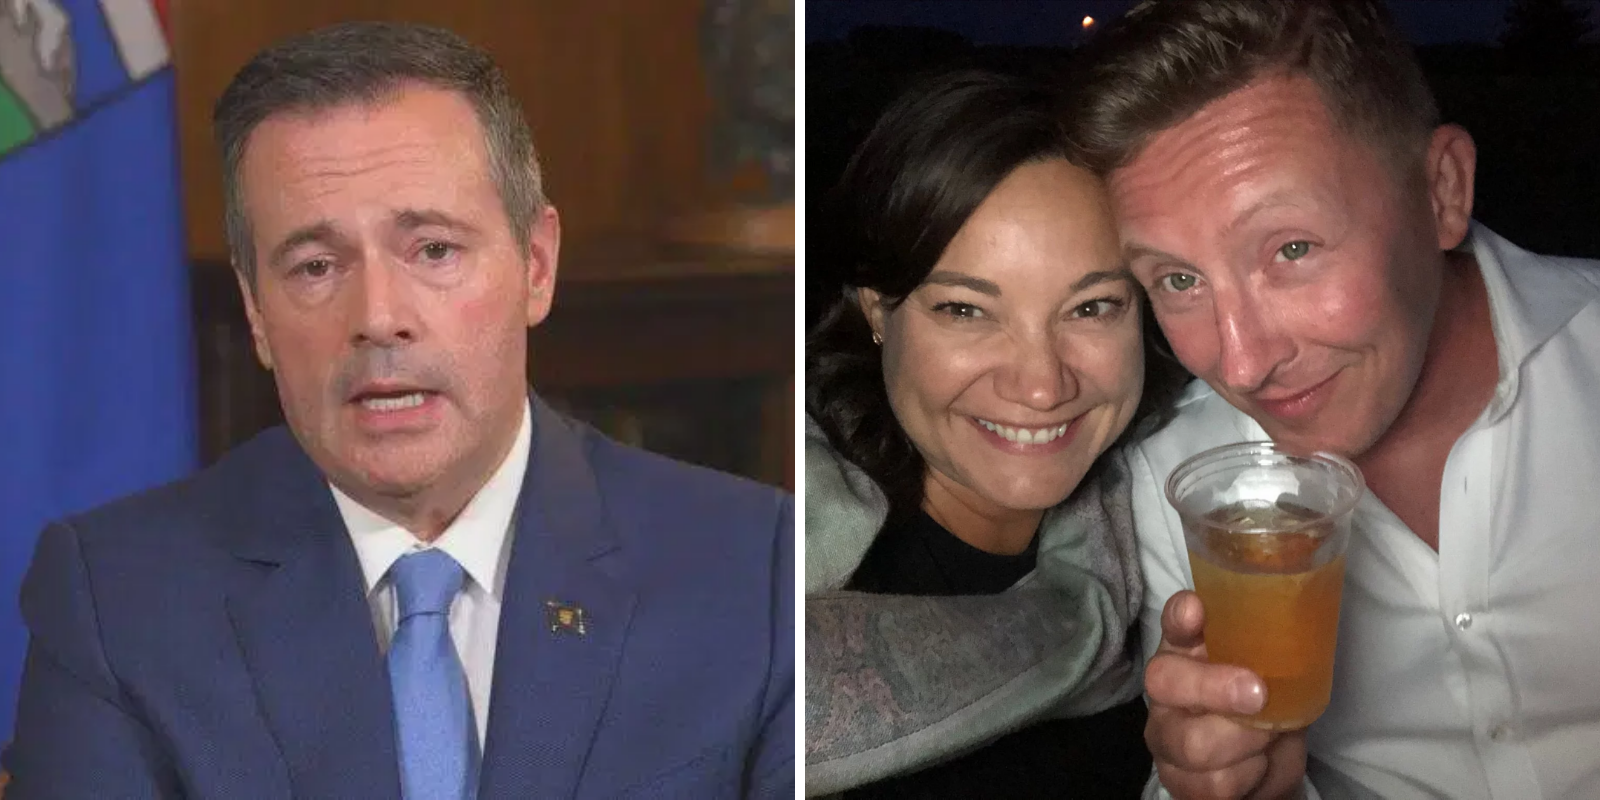 Alberta NDP finance critic compares Kenney to Stalin